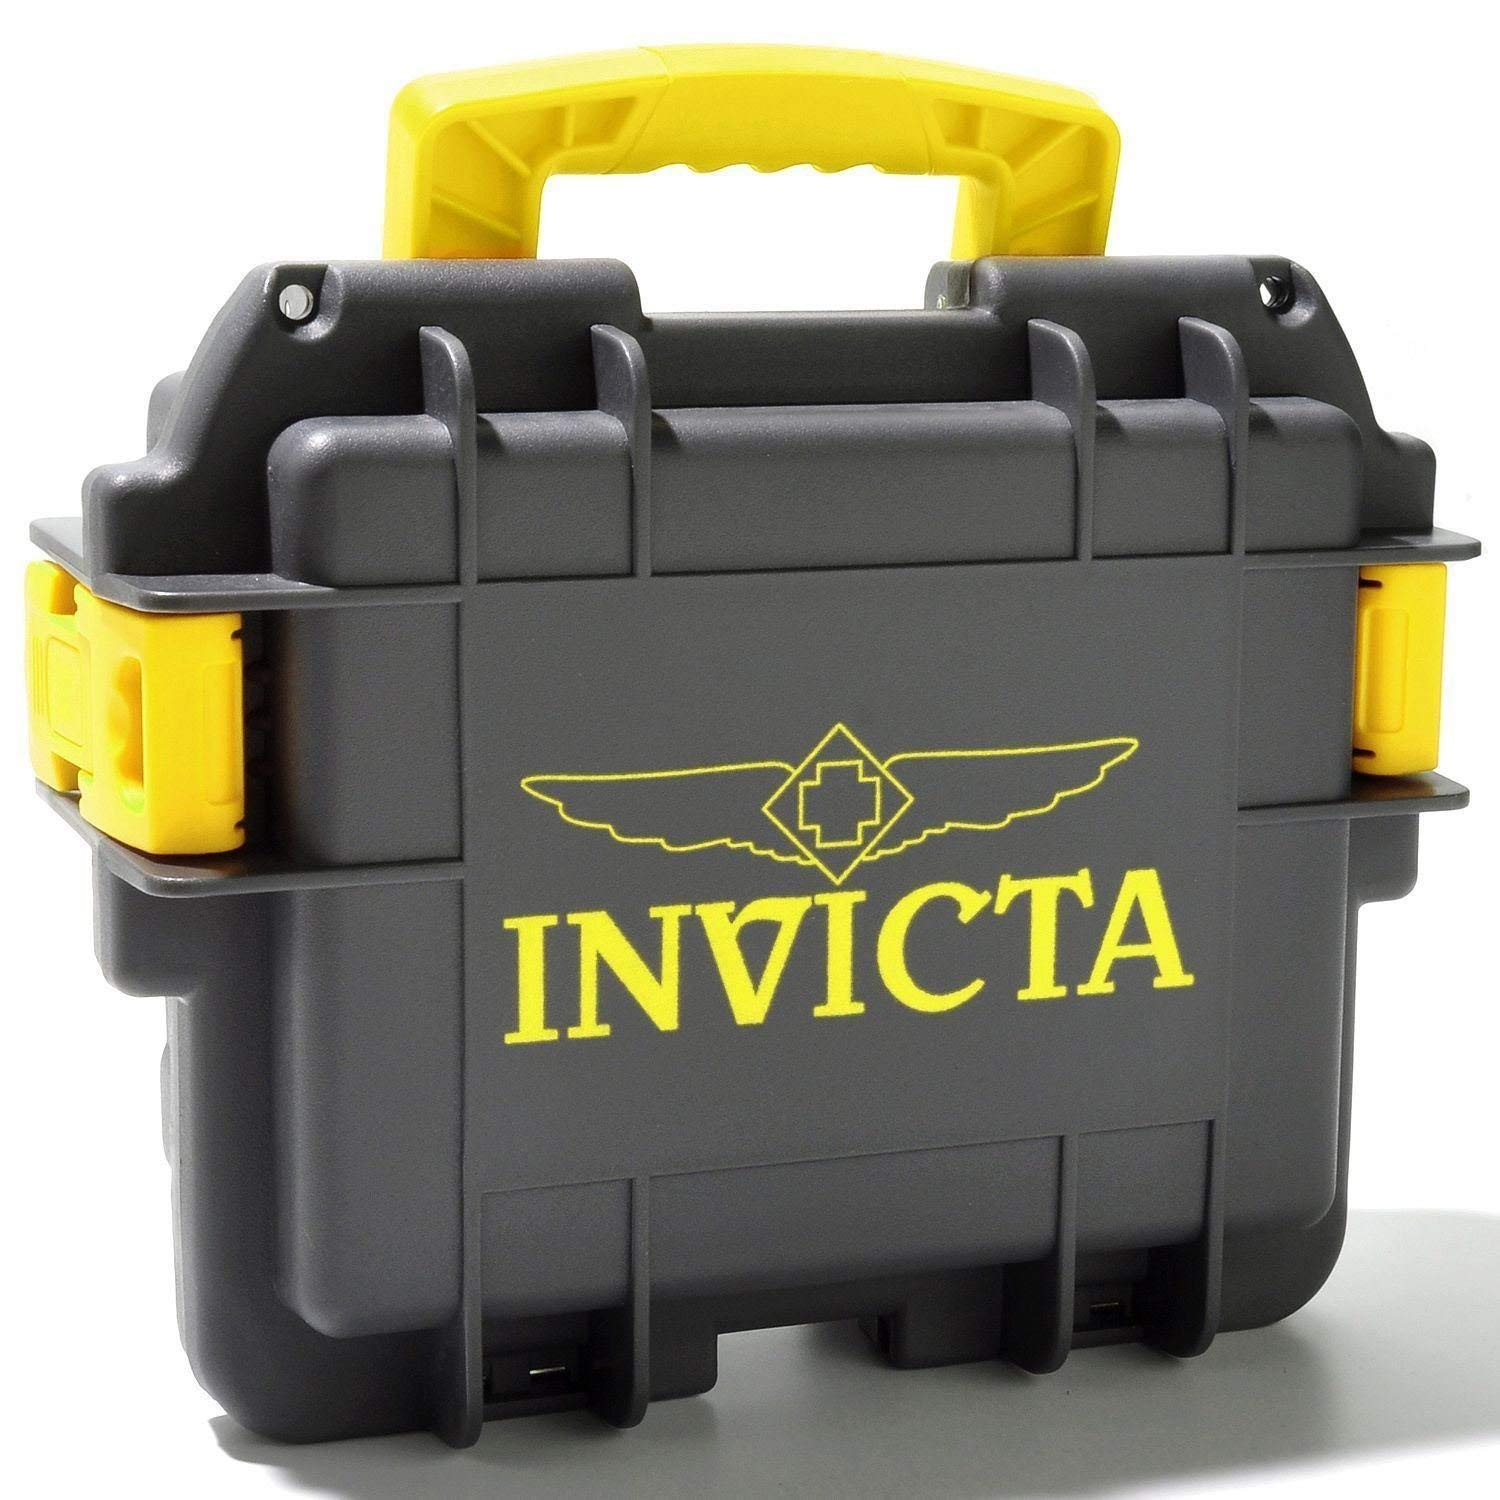 Amazon.com: Invicta Eight Slot Collectors Box in Yellow and Grey DC8GREY-YEL: Watches